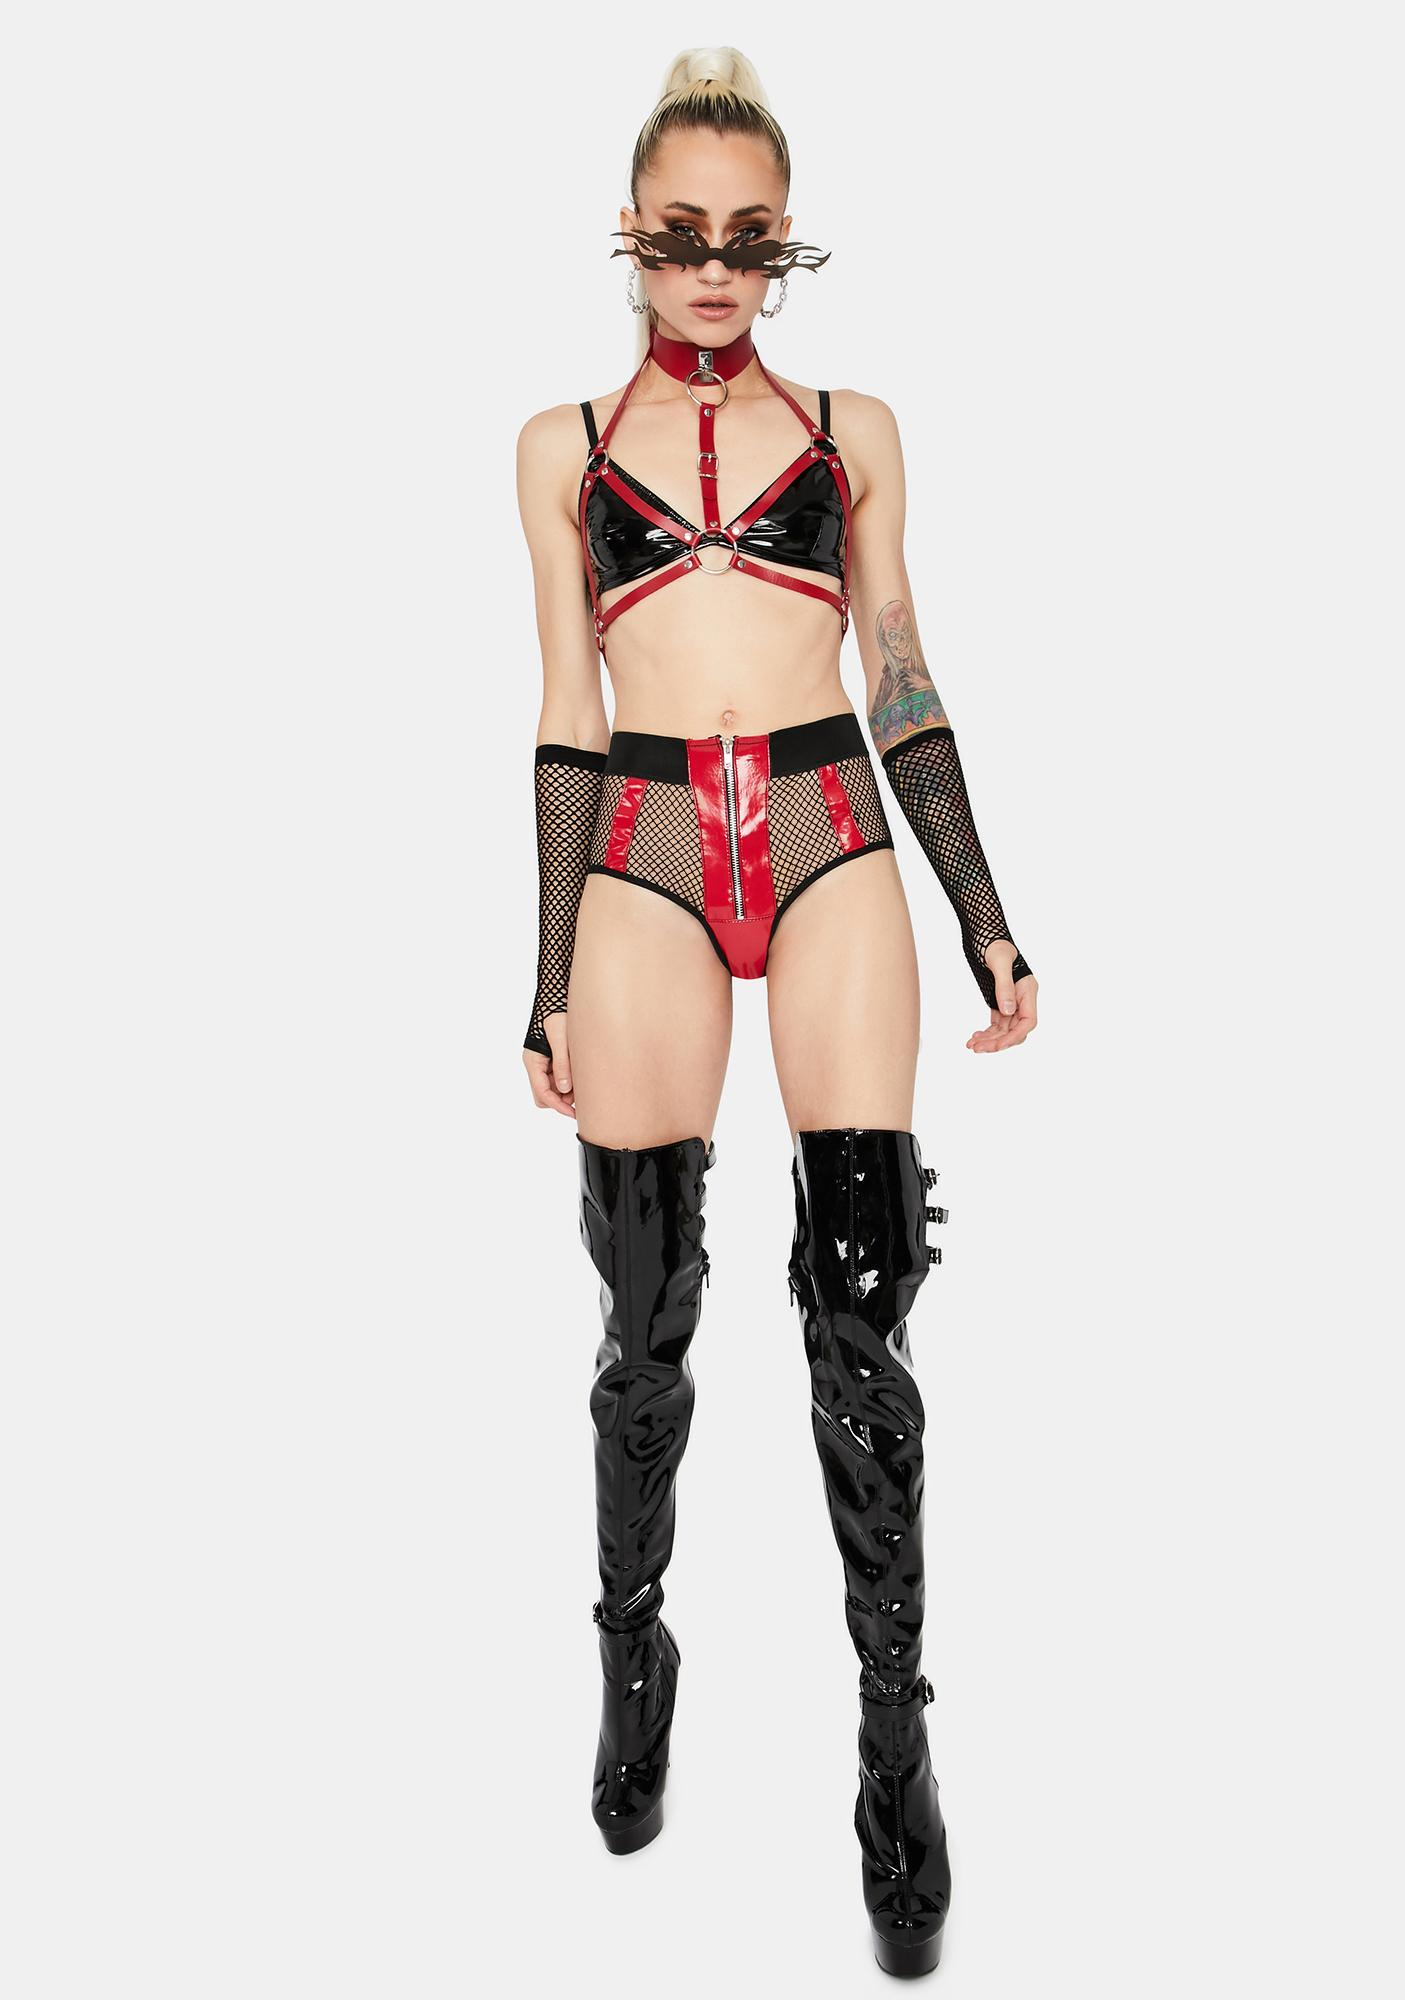 Make It Hot Body Harness